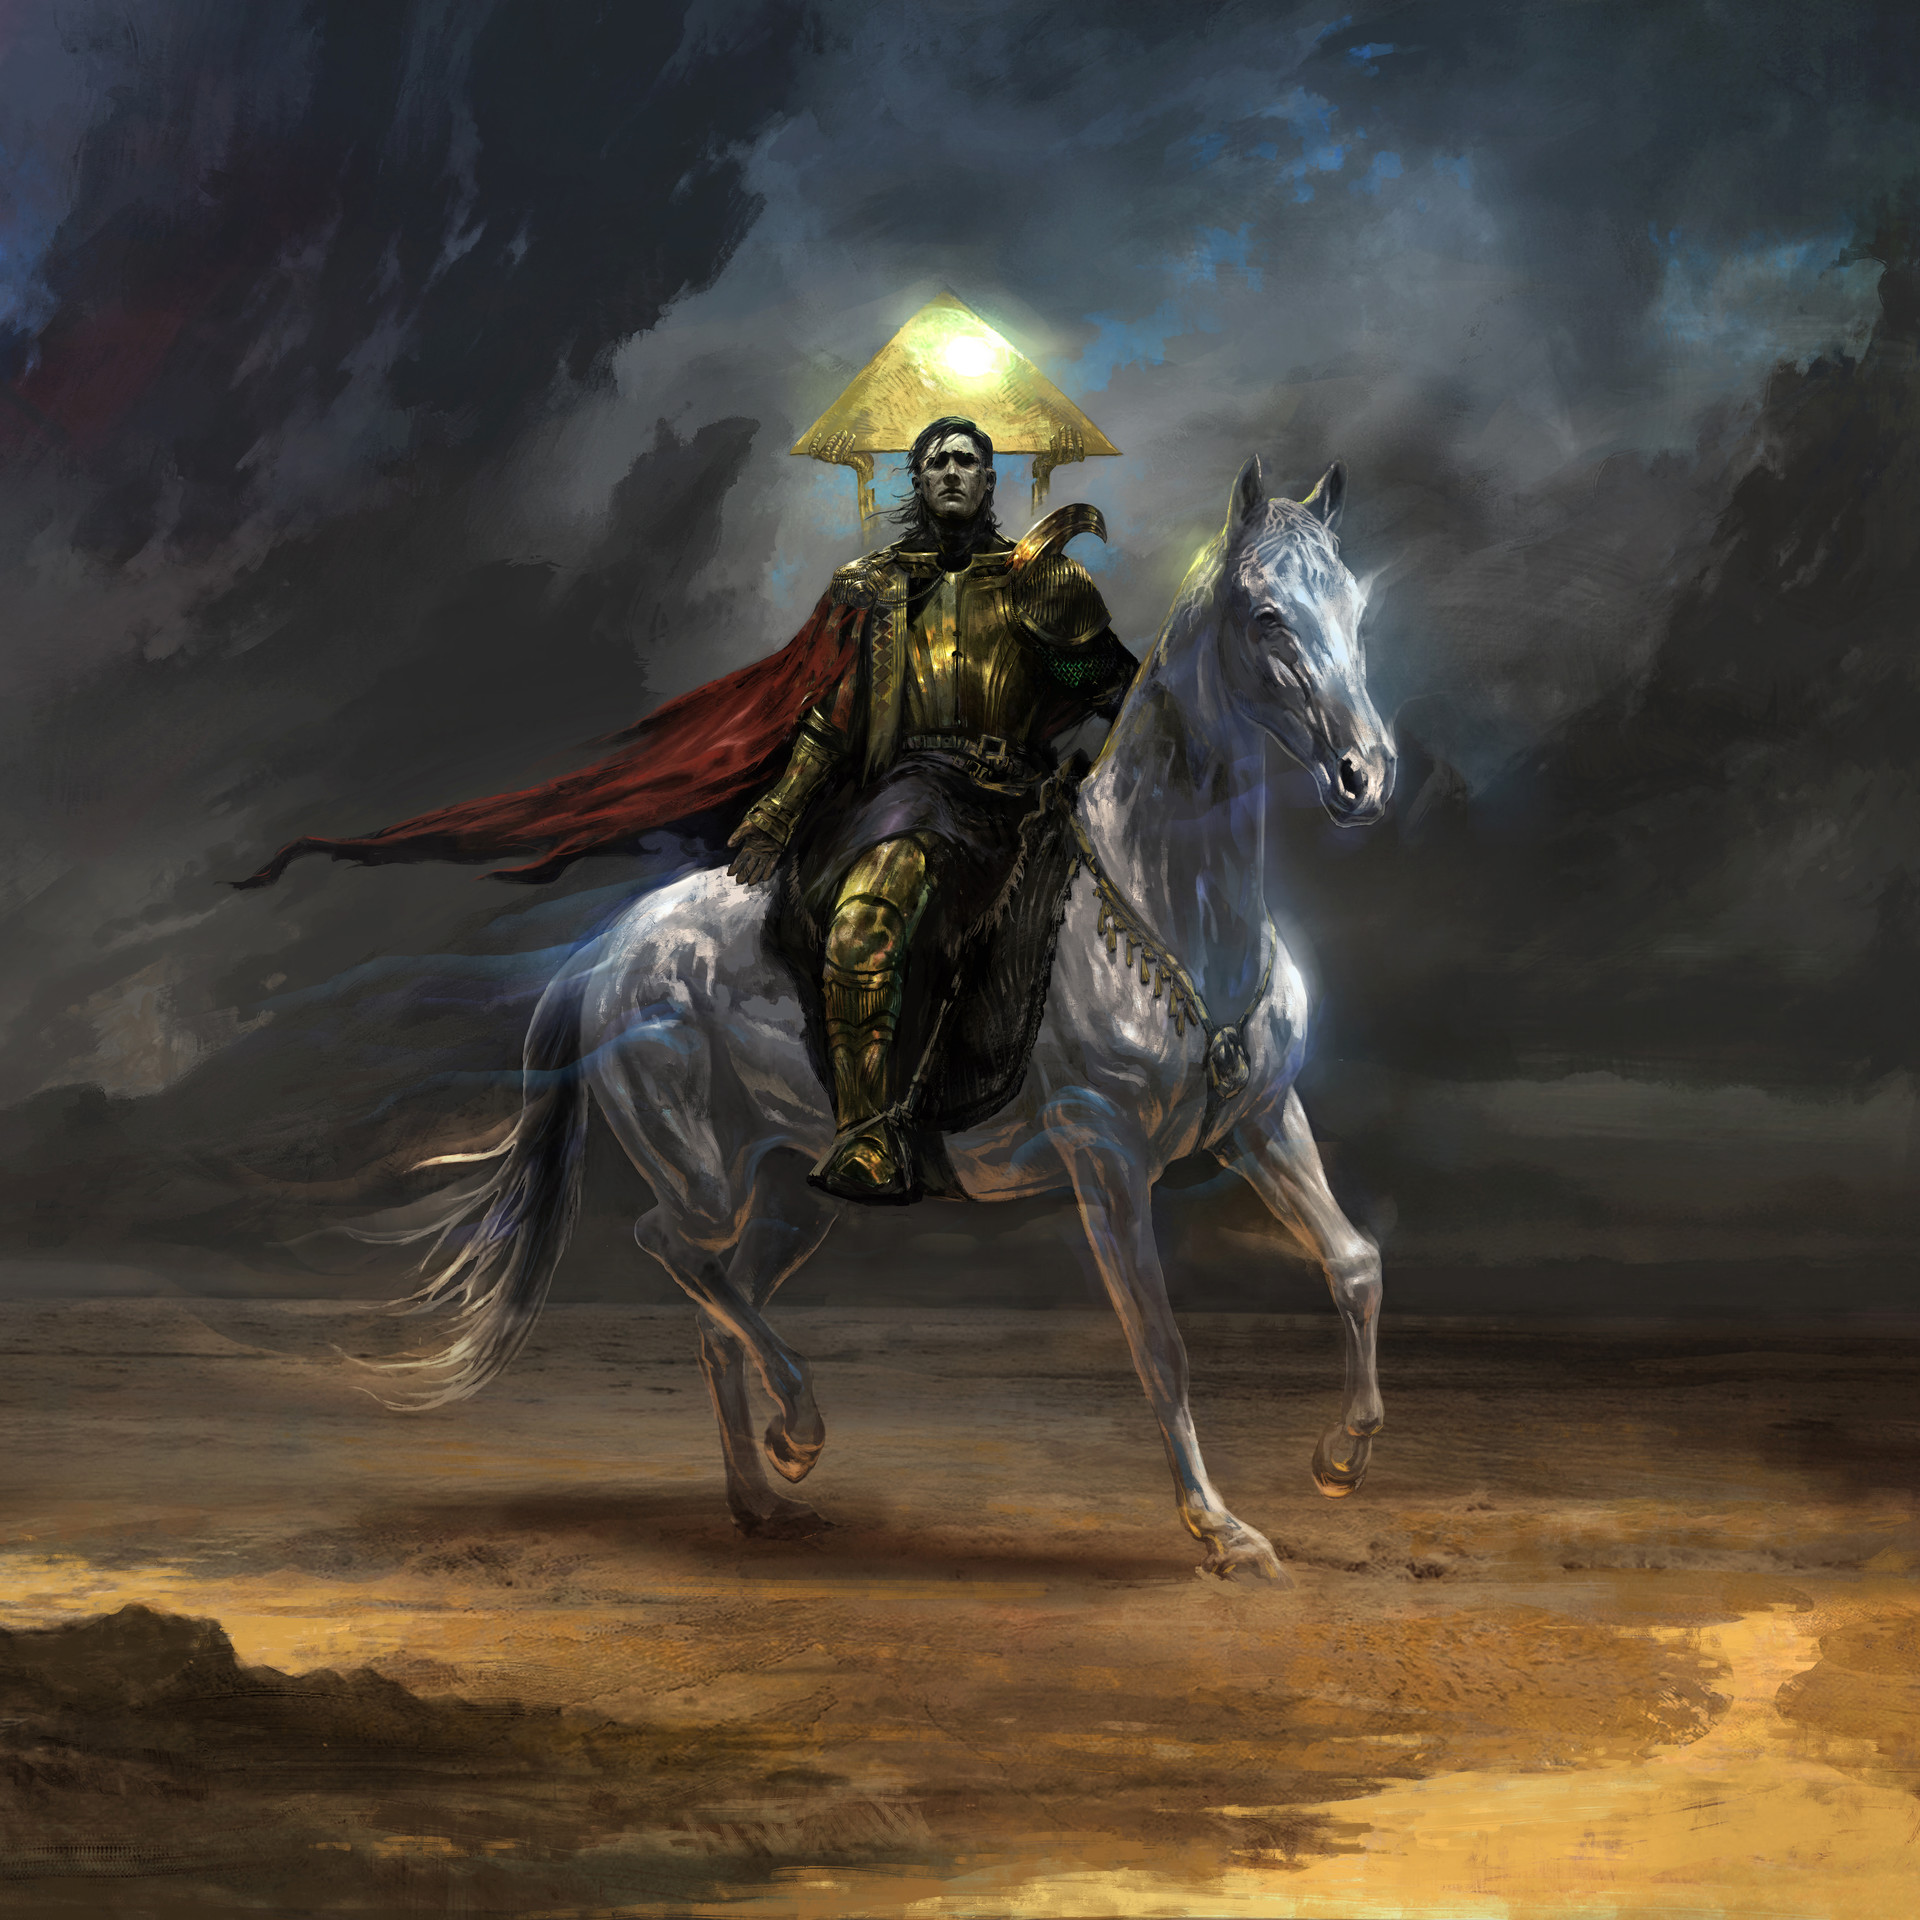 ArtStation - The Pale Rider, Dimitar Ivanov